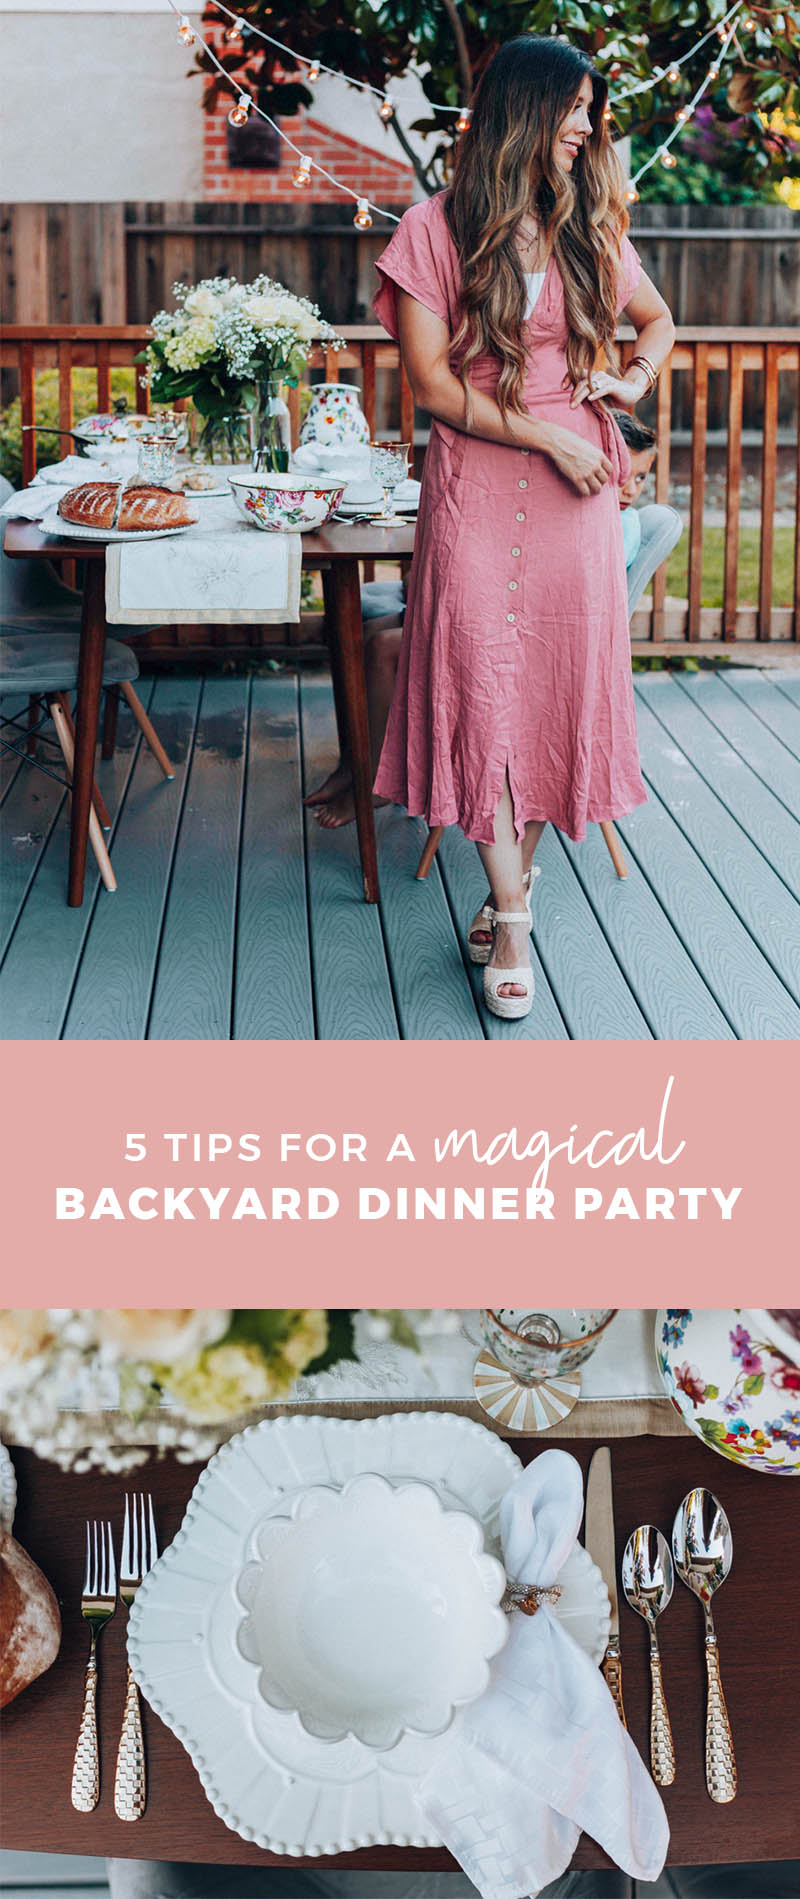 5 Tips To Host Your Own Backyard Dinner Party The Girl In The